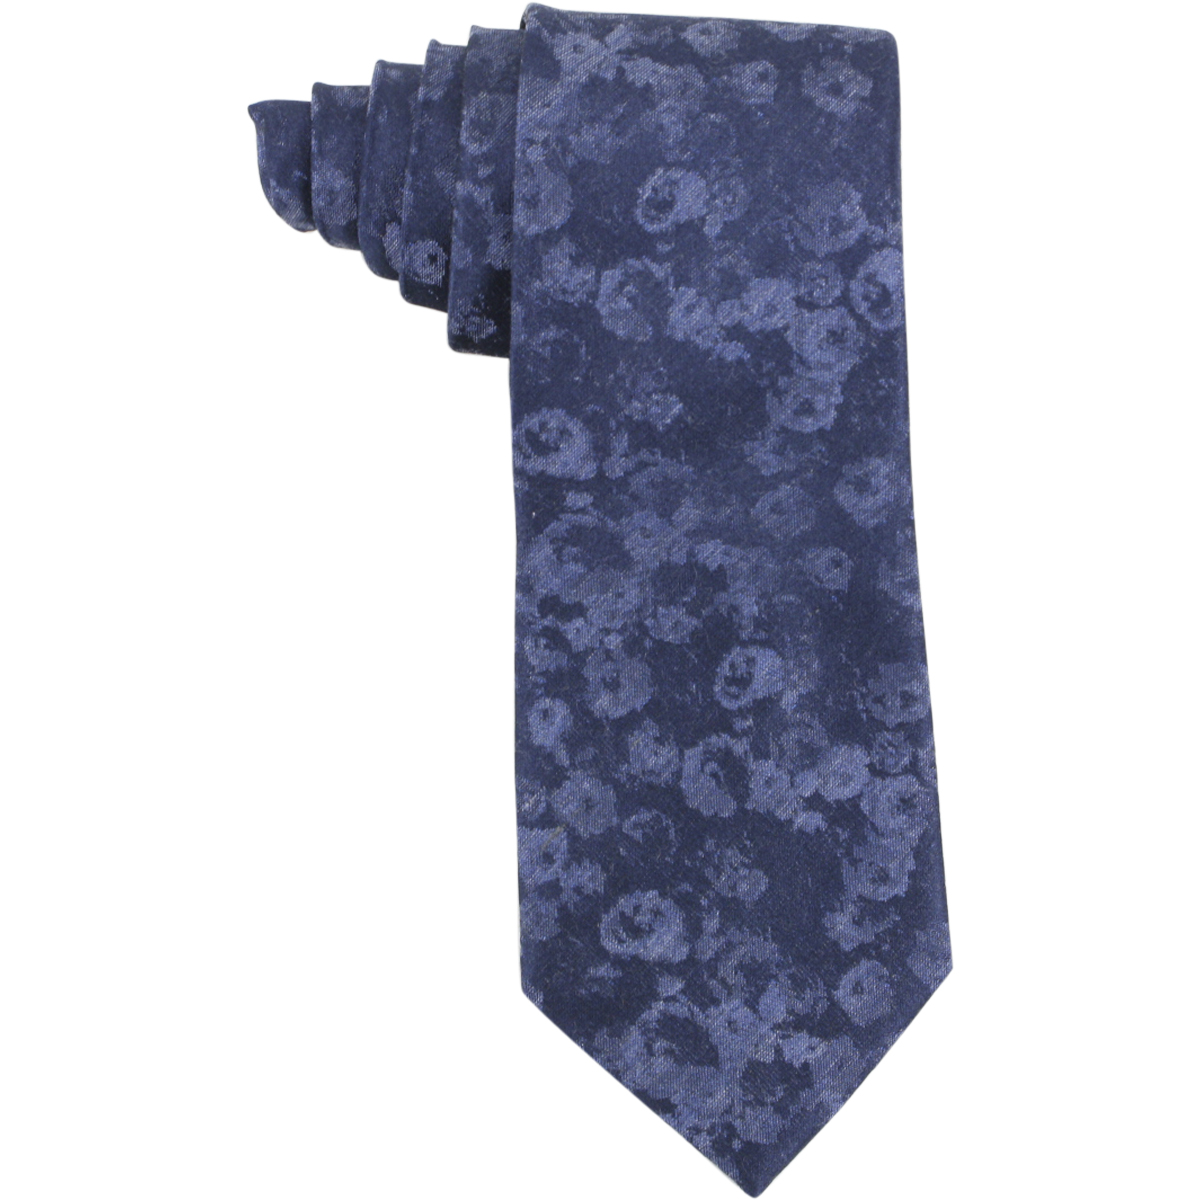 Image of Calvin Klein Men's Melange Rose Bouquet Floral Print Tie - Blue - 3 Inch